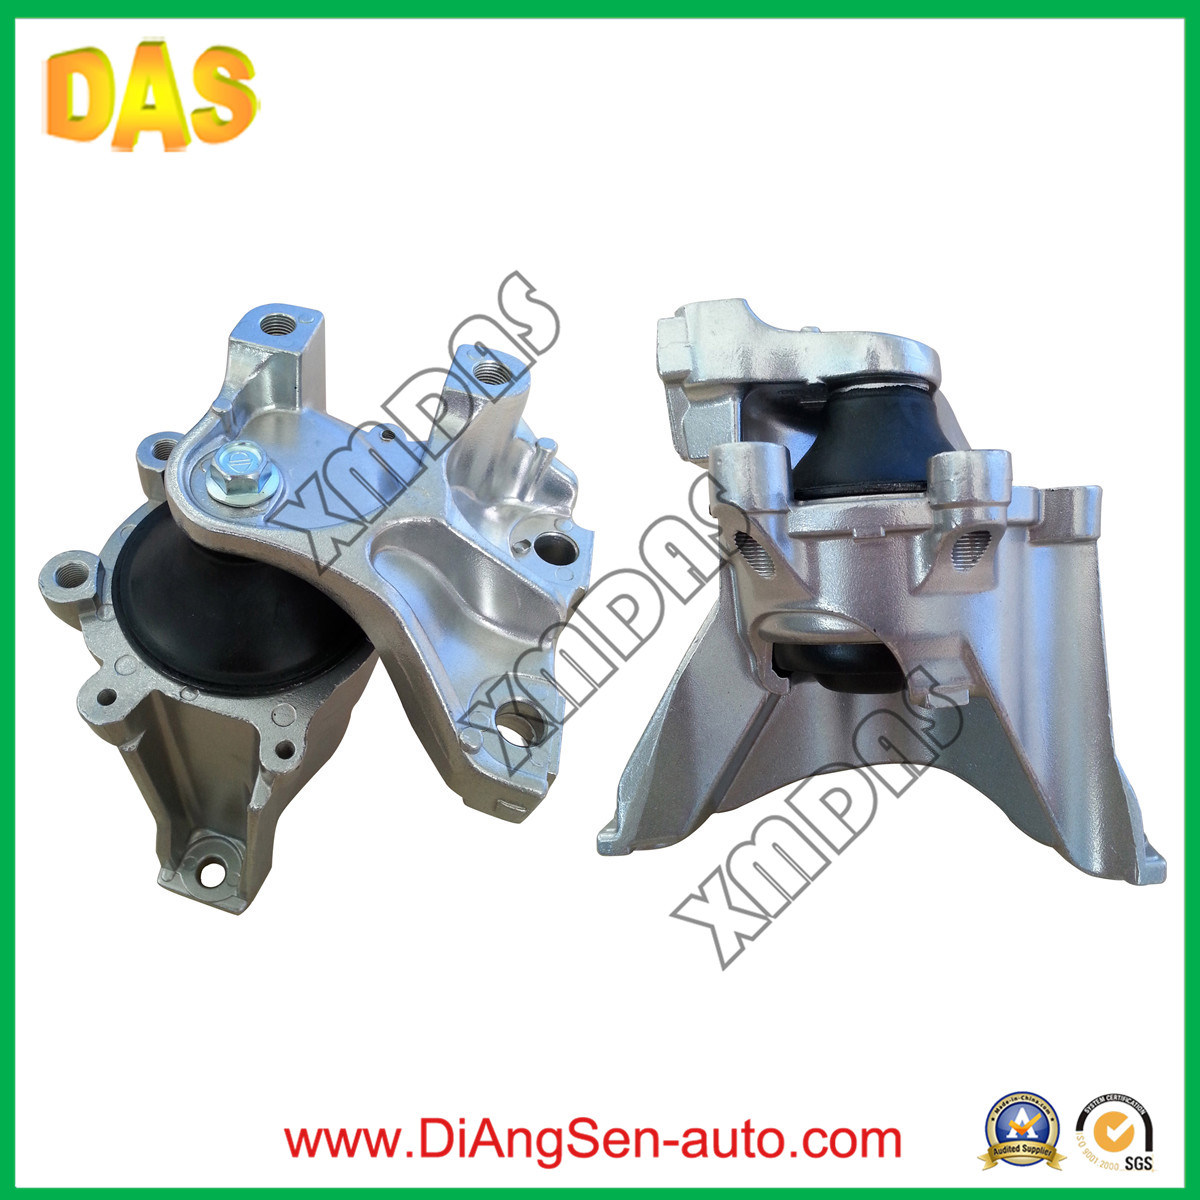 Auto Spare Parts Engine Mounting For Honda Crv 50820 Swg T01 2009 Ridgeline Suspension Control Arm Front Right Lower W0133 Good Quality And Professional Service 4 Offer Customized Packing 5 Can Produce According To Your Sample Or Drawing 6 Large Capacity Fast Delivery